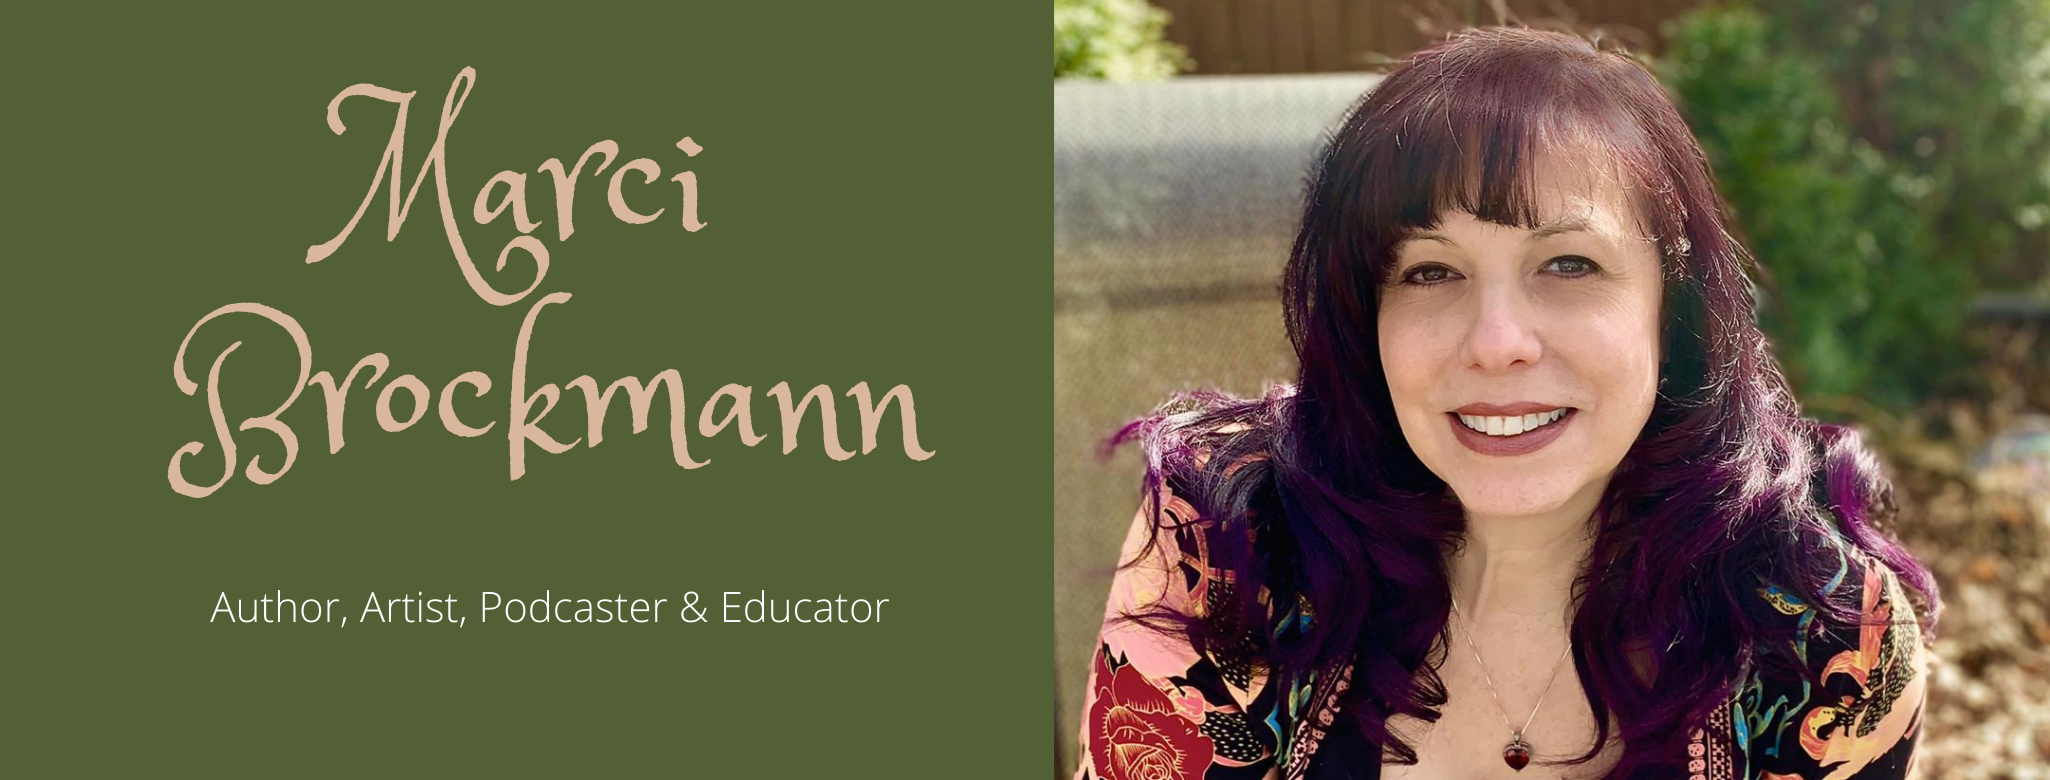 Marci Brockmann Author, Artist, Podcaster & Educator